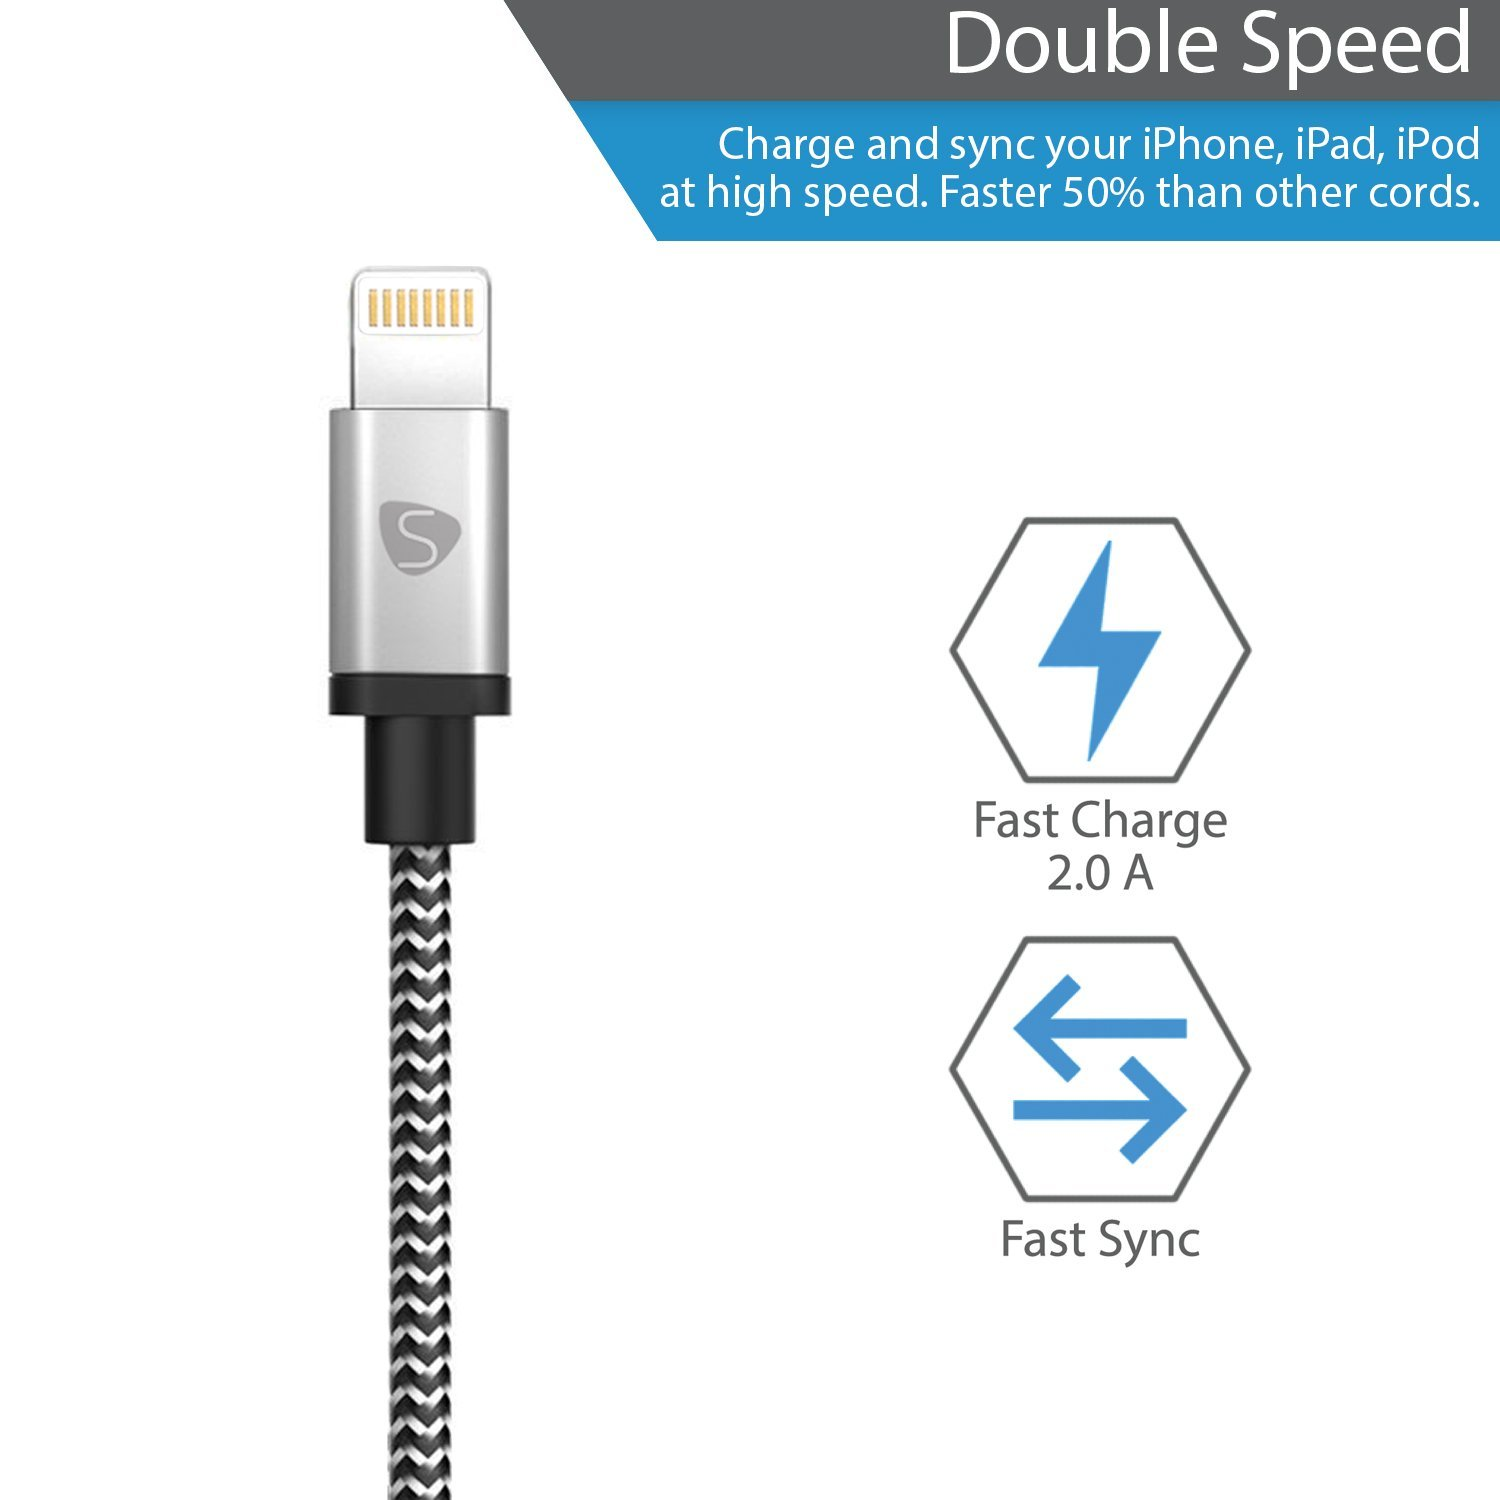 Smarty iPhone Charger MFi Certified Lightning Cable 6ft 3 Pack Nylon Braided Fast Charging & Sync Power Cord for iPhone X 8/8 plus 7/7 Plus/6/6S/6 Plus/6S Plus/5 5S 5C SE iPad 2 3 4 by Smarty (Image #3)